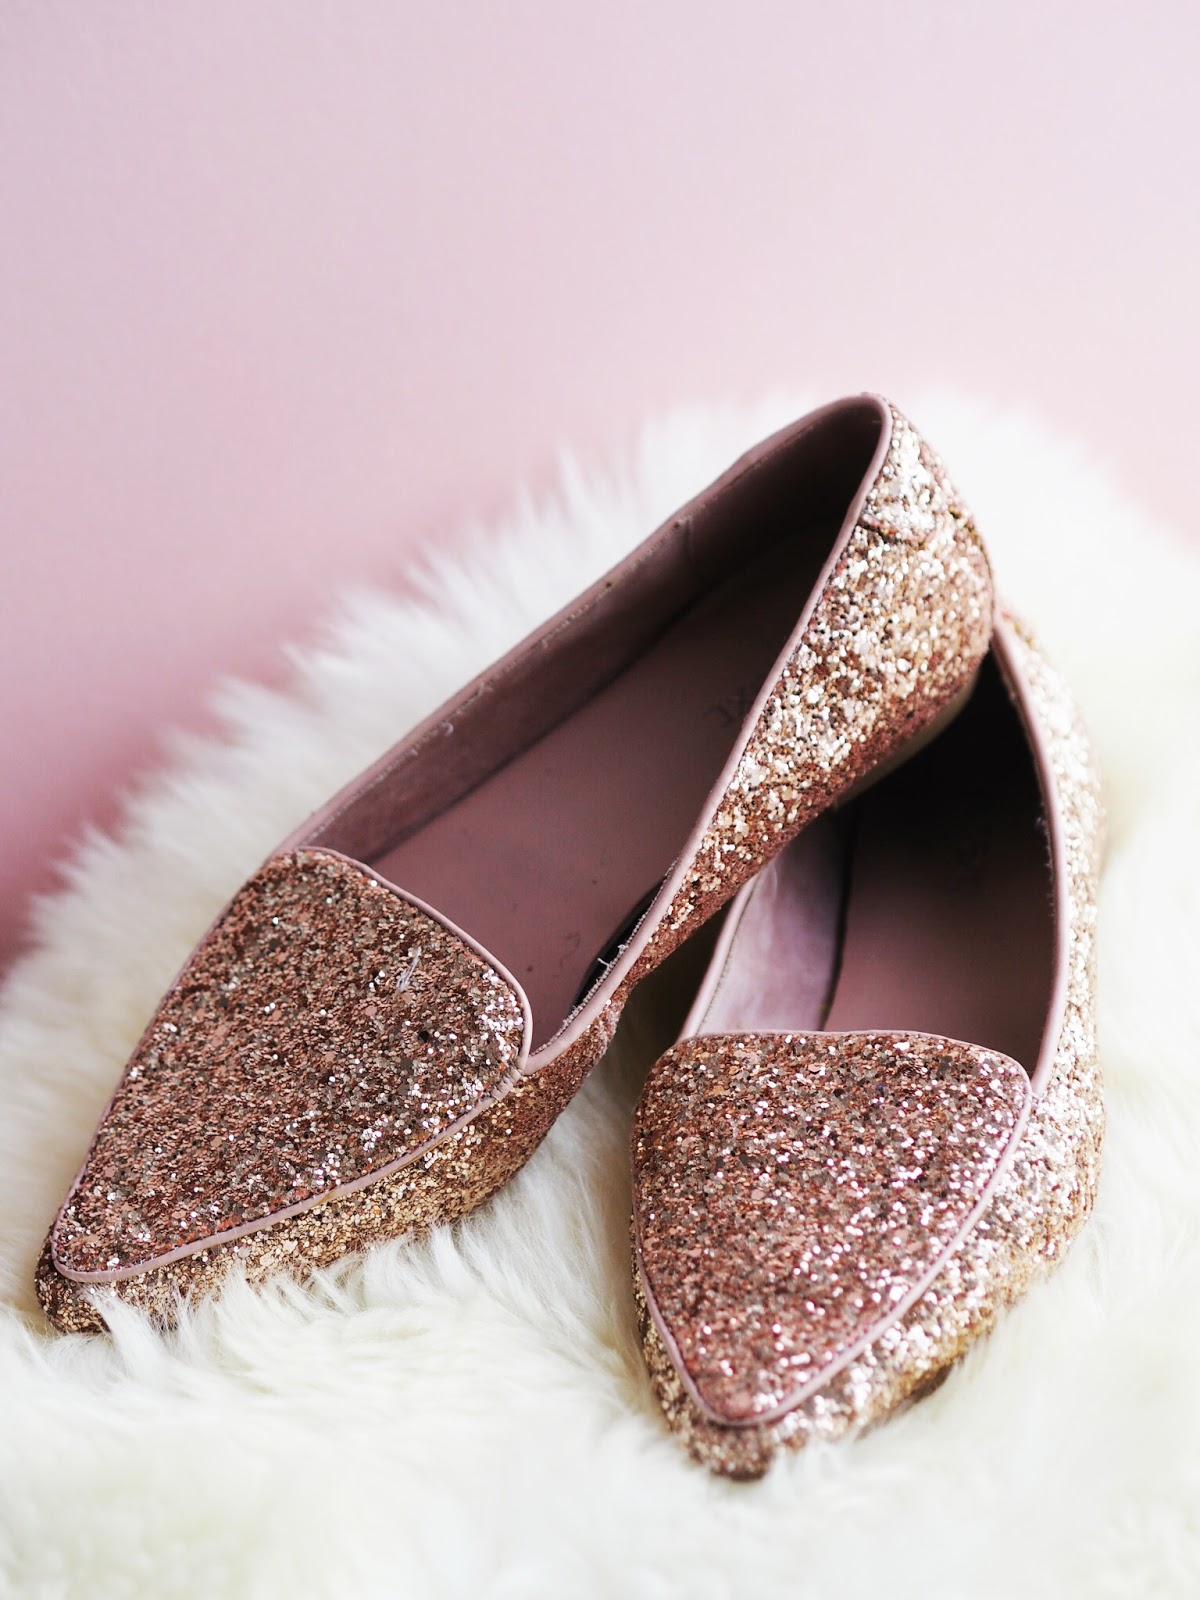 Summer Shoe Staples Next Rose Gold Glitter Flat Shoes Sparkly